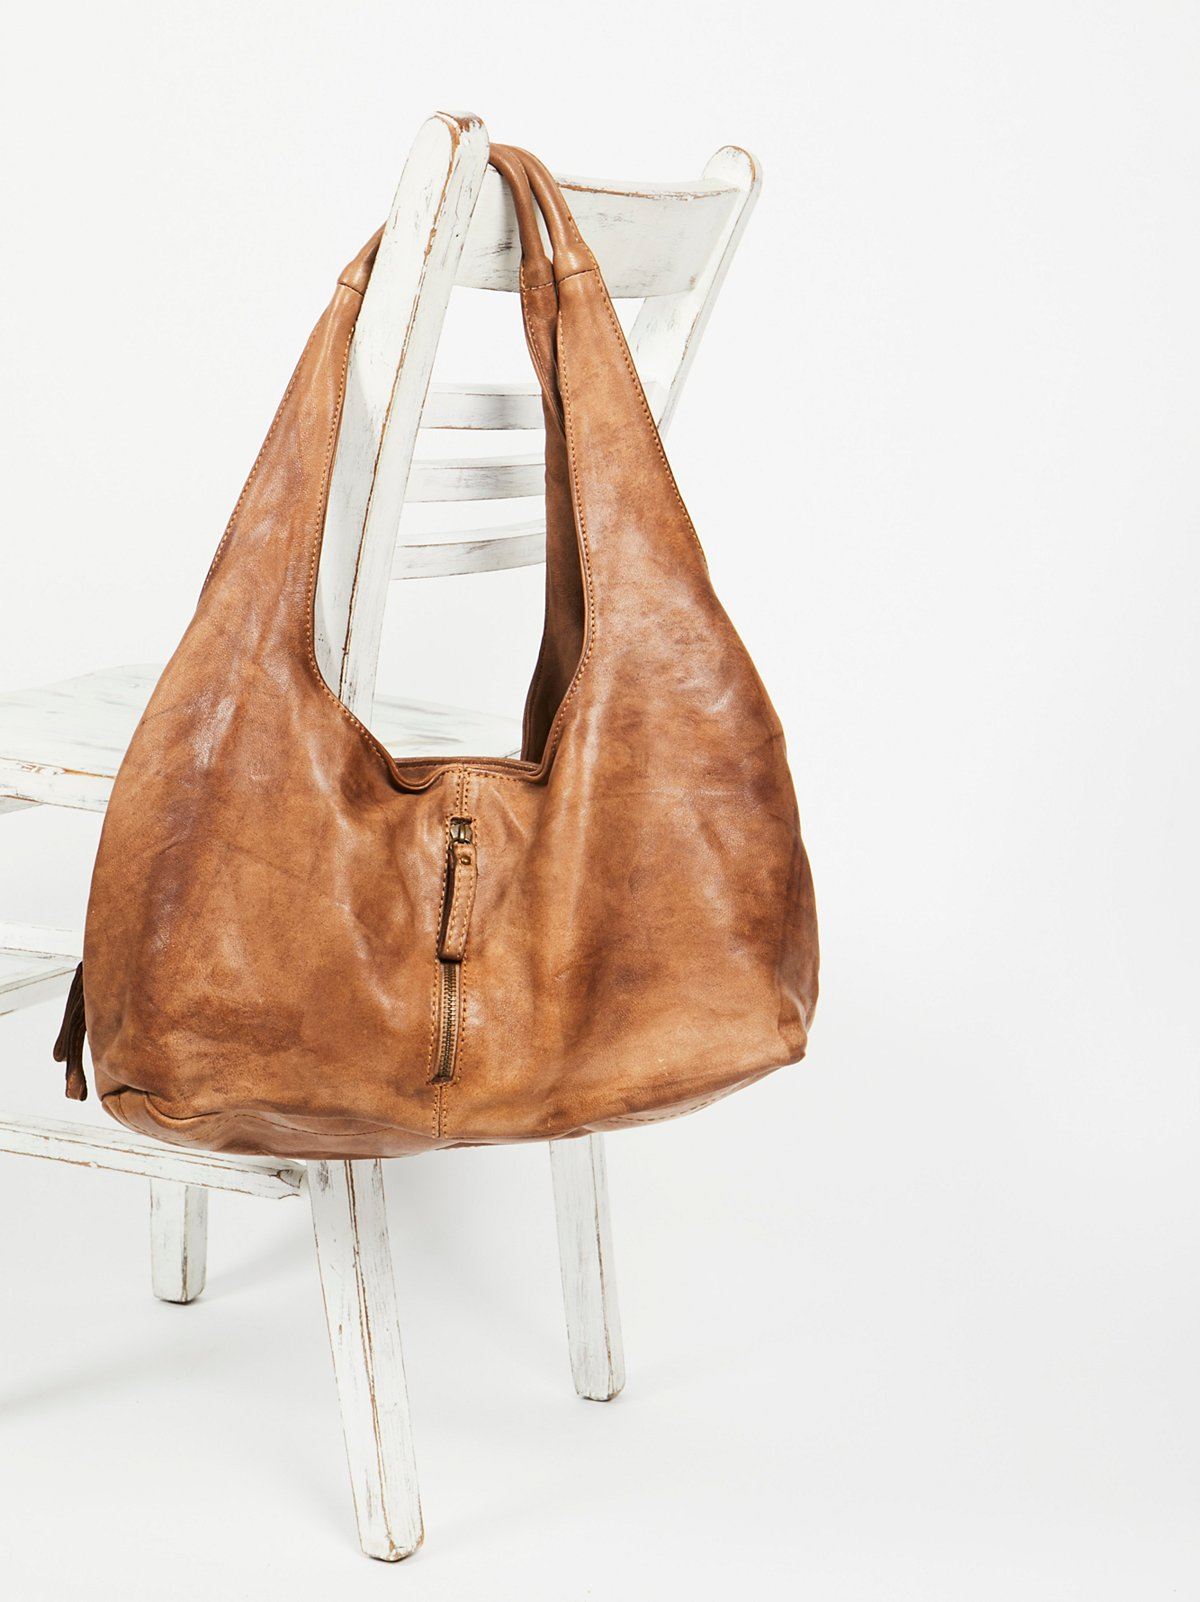 Fiore Distressed Hobo